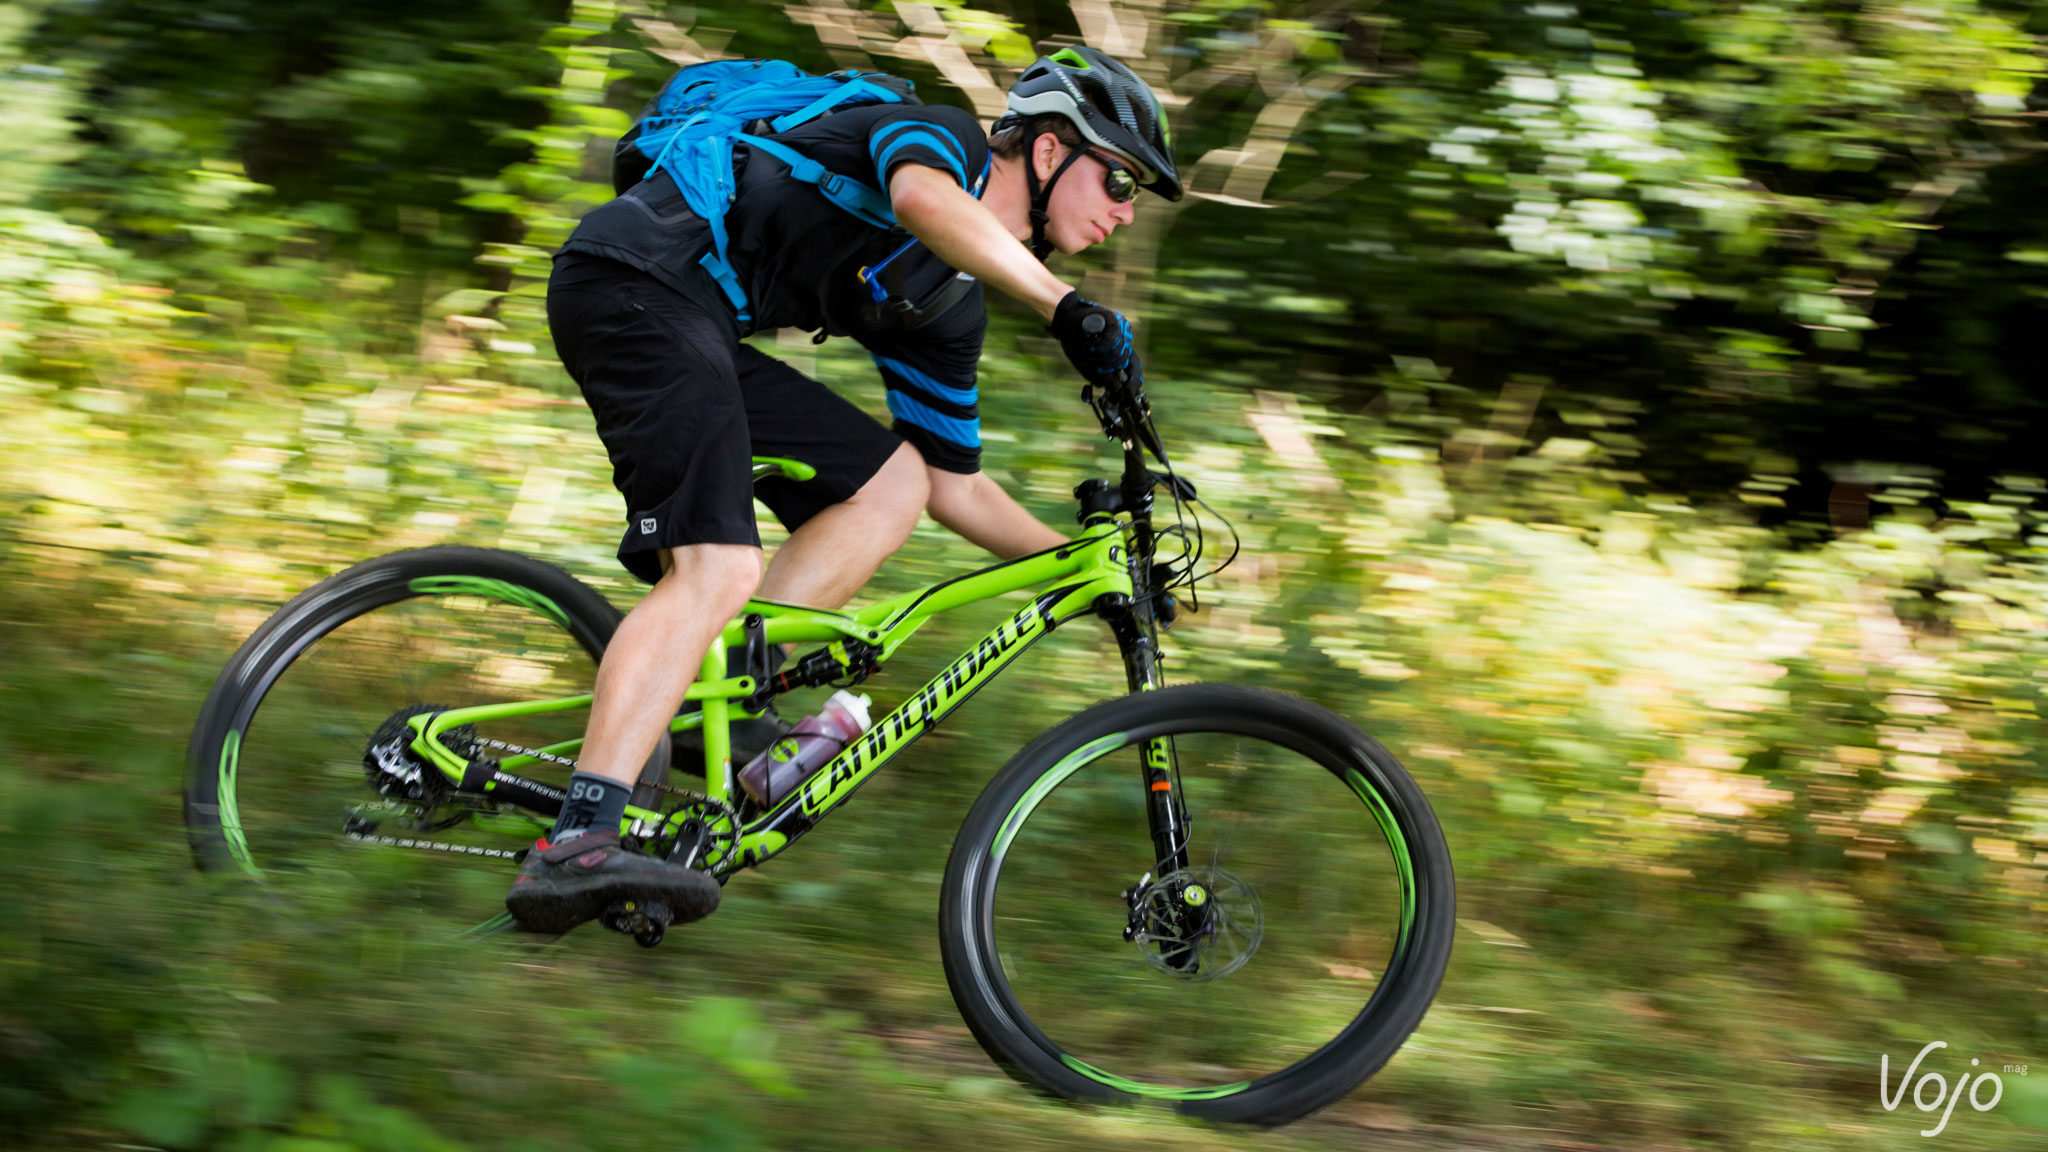 Cannondale-habit-2016-Hi-mod-1-vojo-paul-humbert-first-ride-62